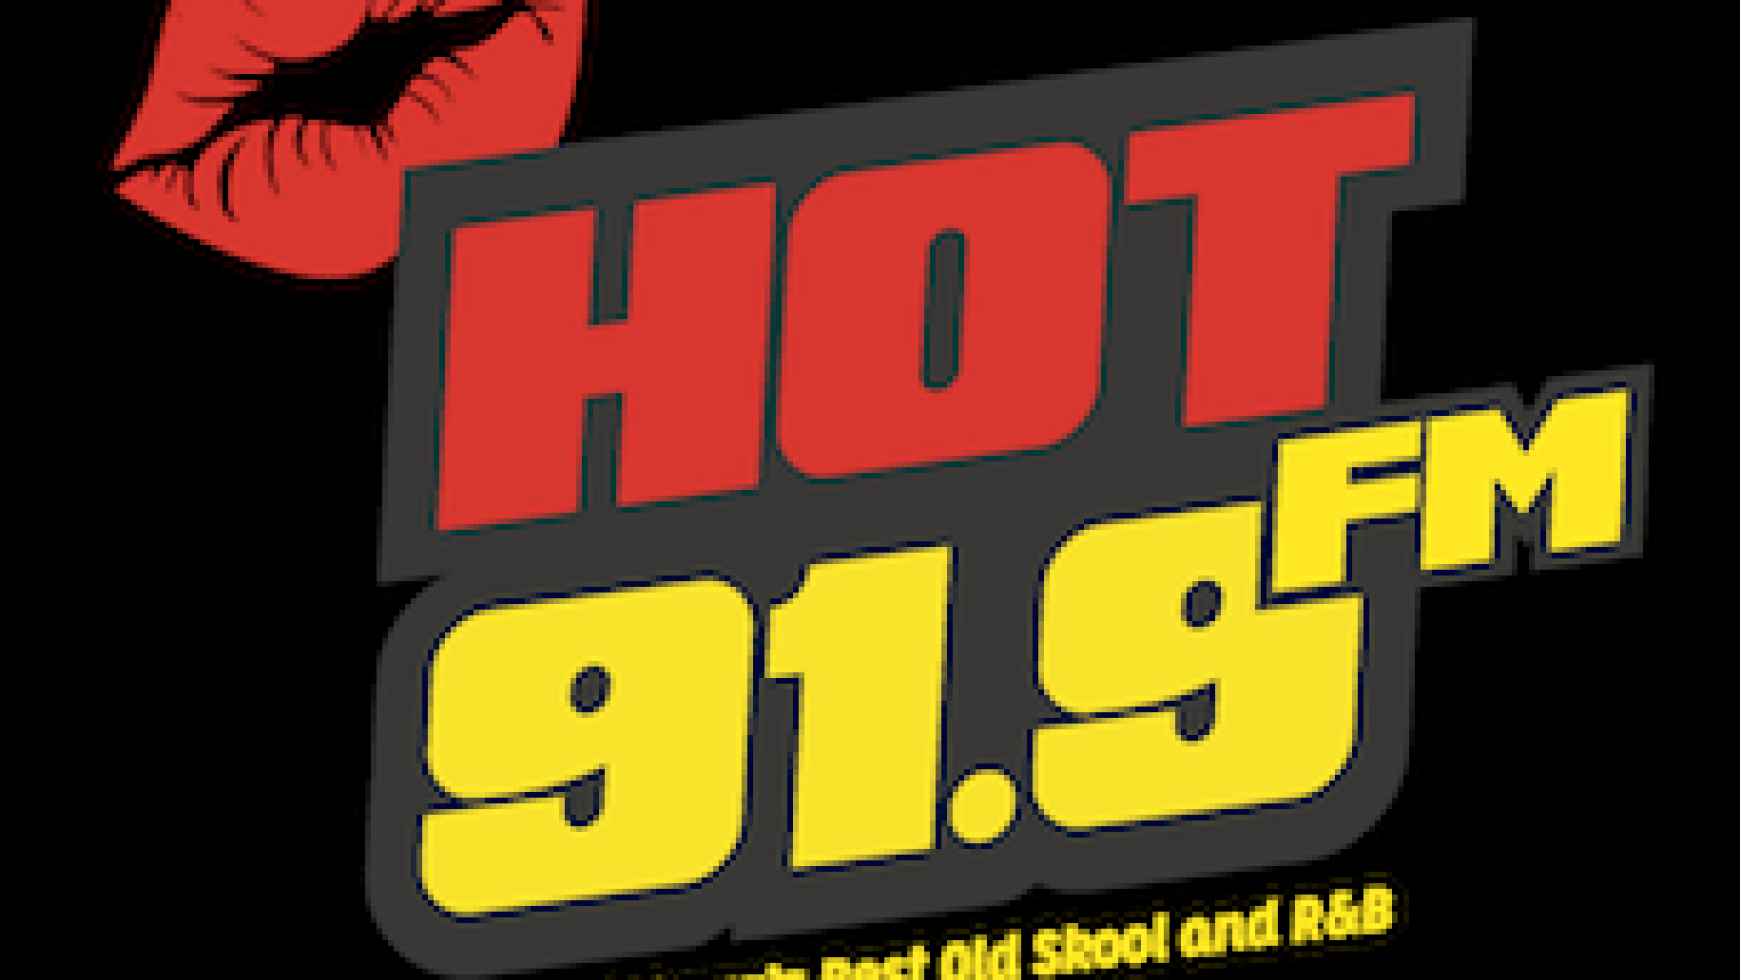 Hot 91.9 BBA radio advert